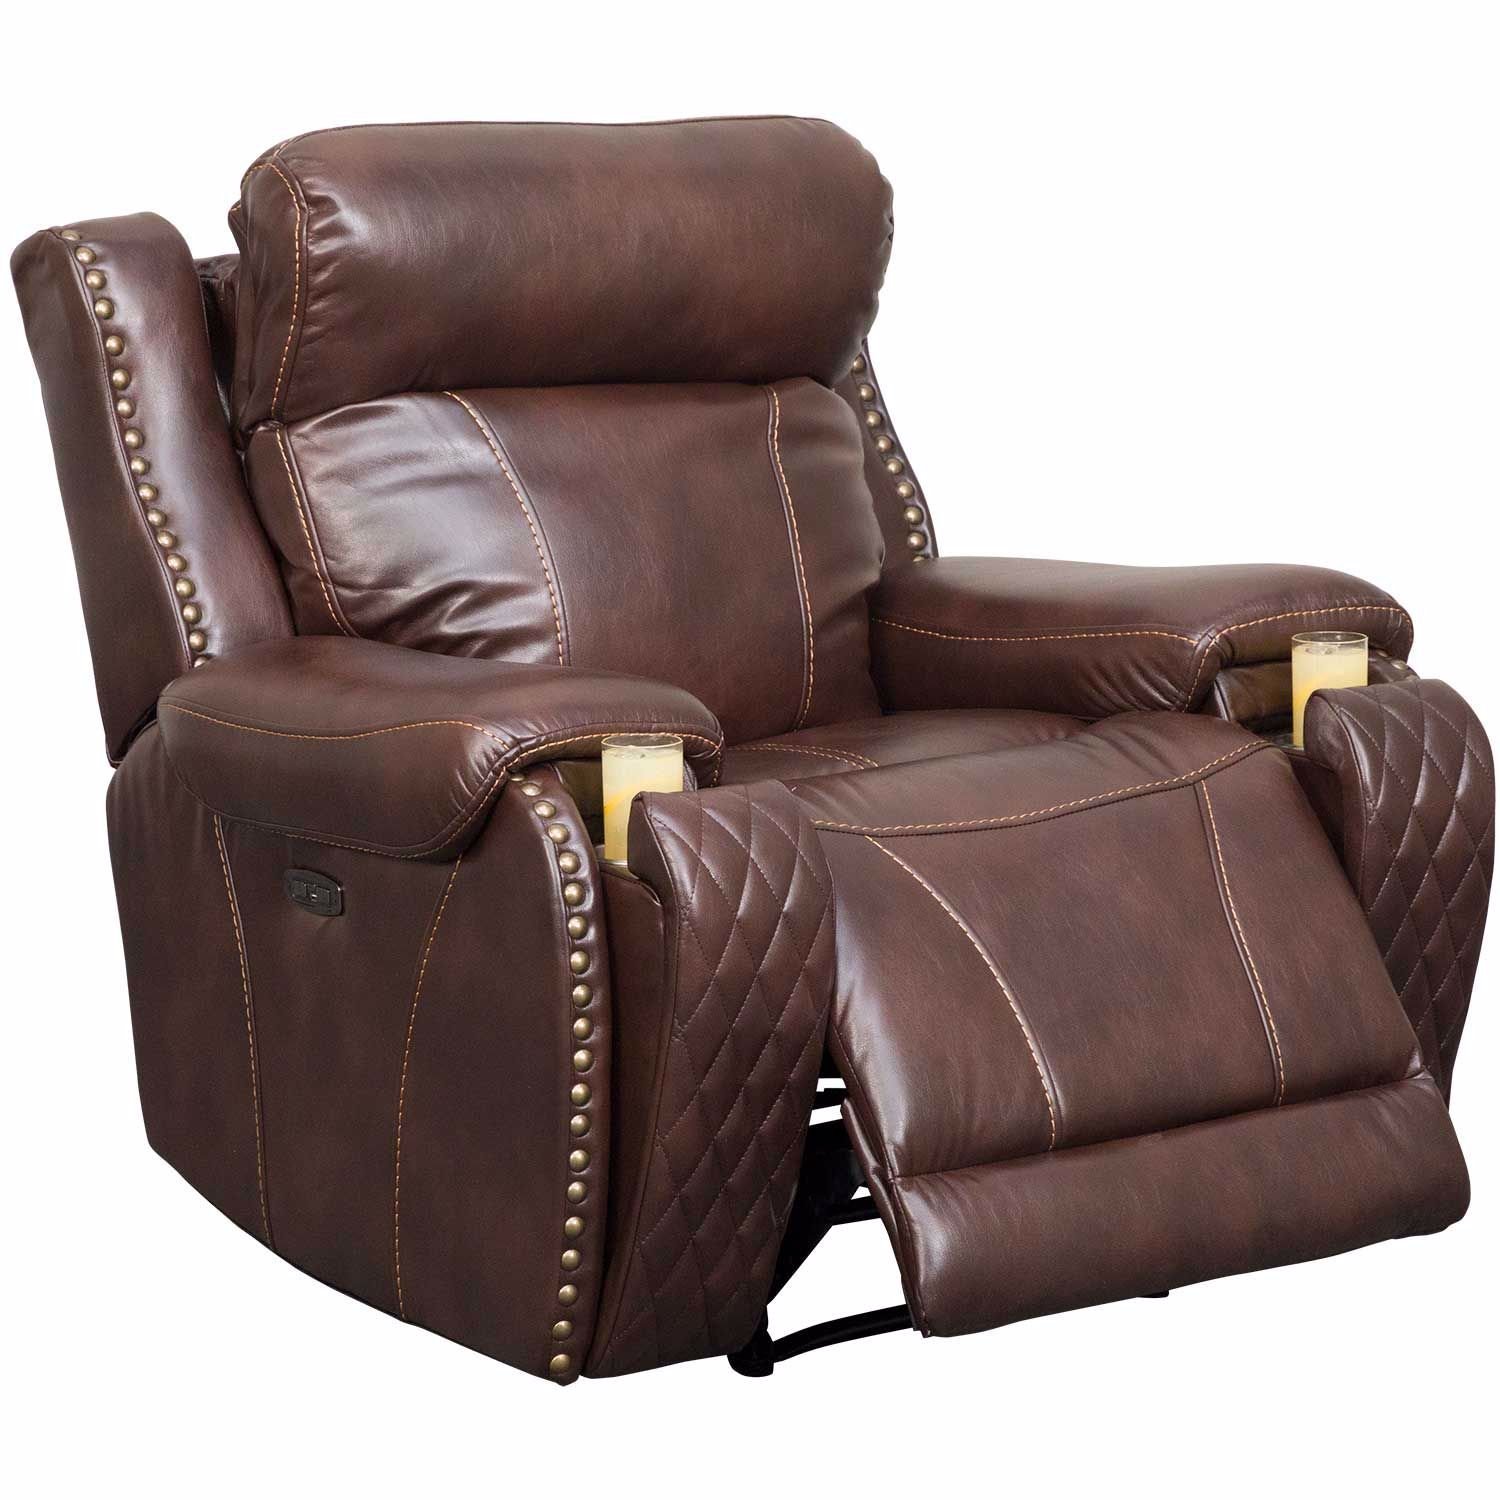 Picture of Gia Power Recliner with Adjustable Headrest